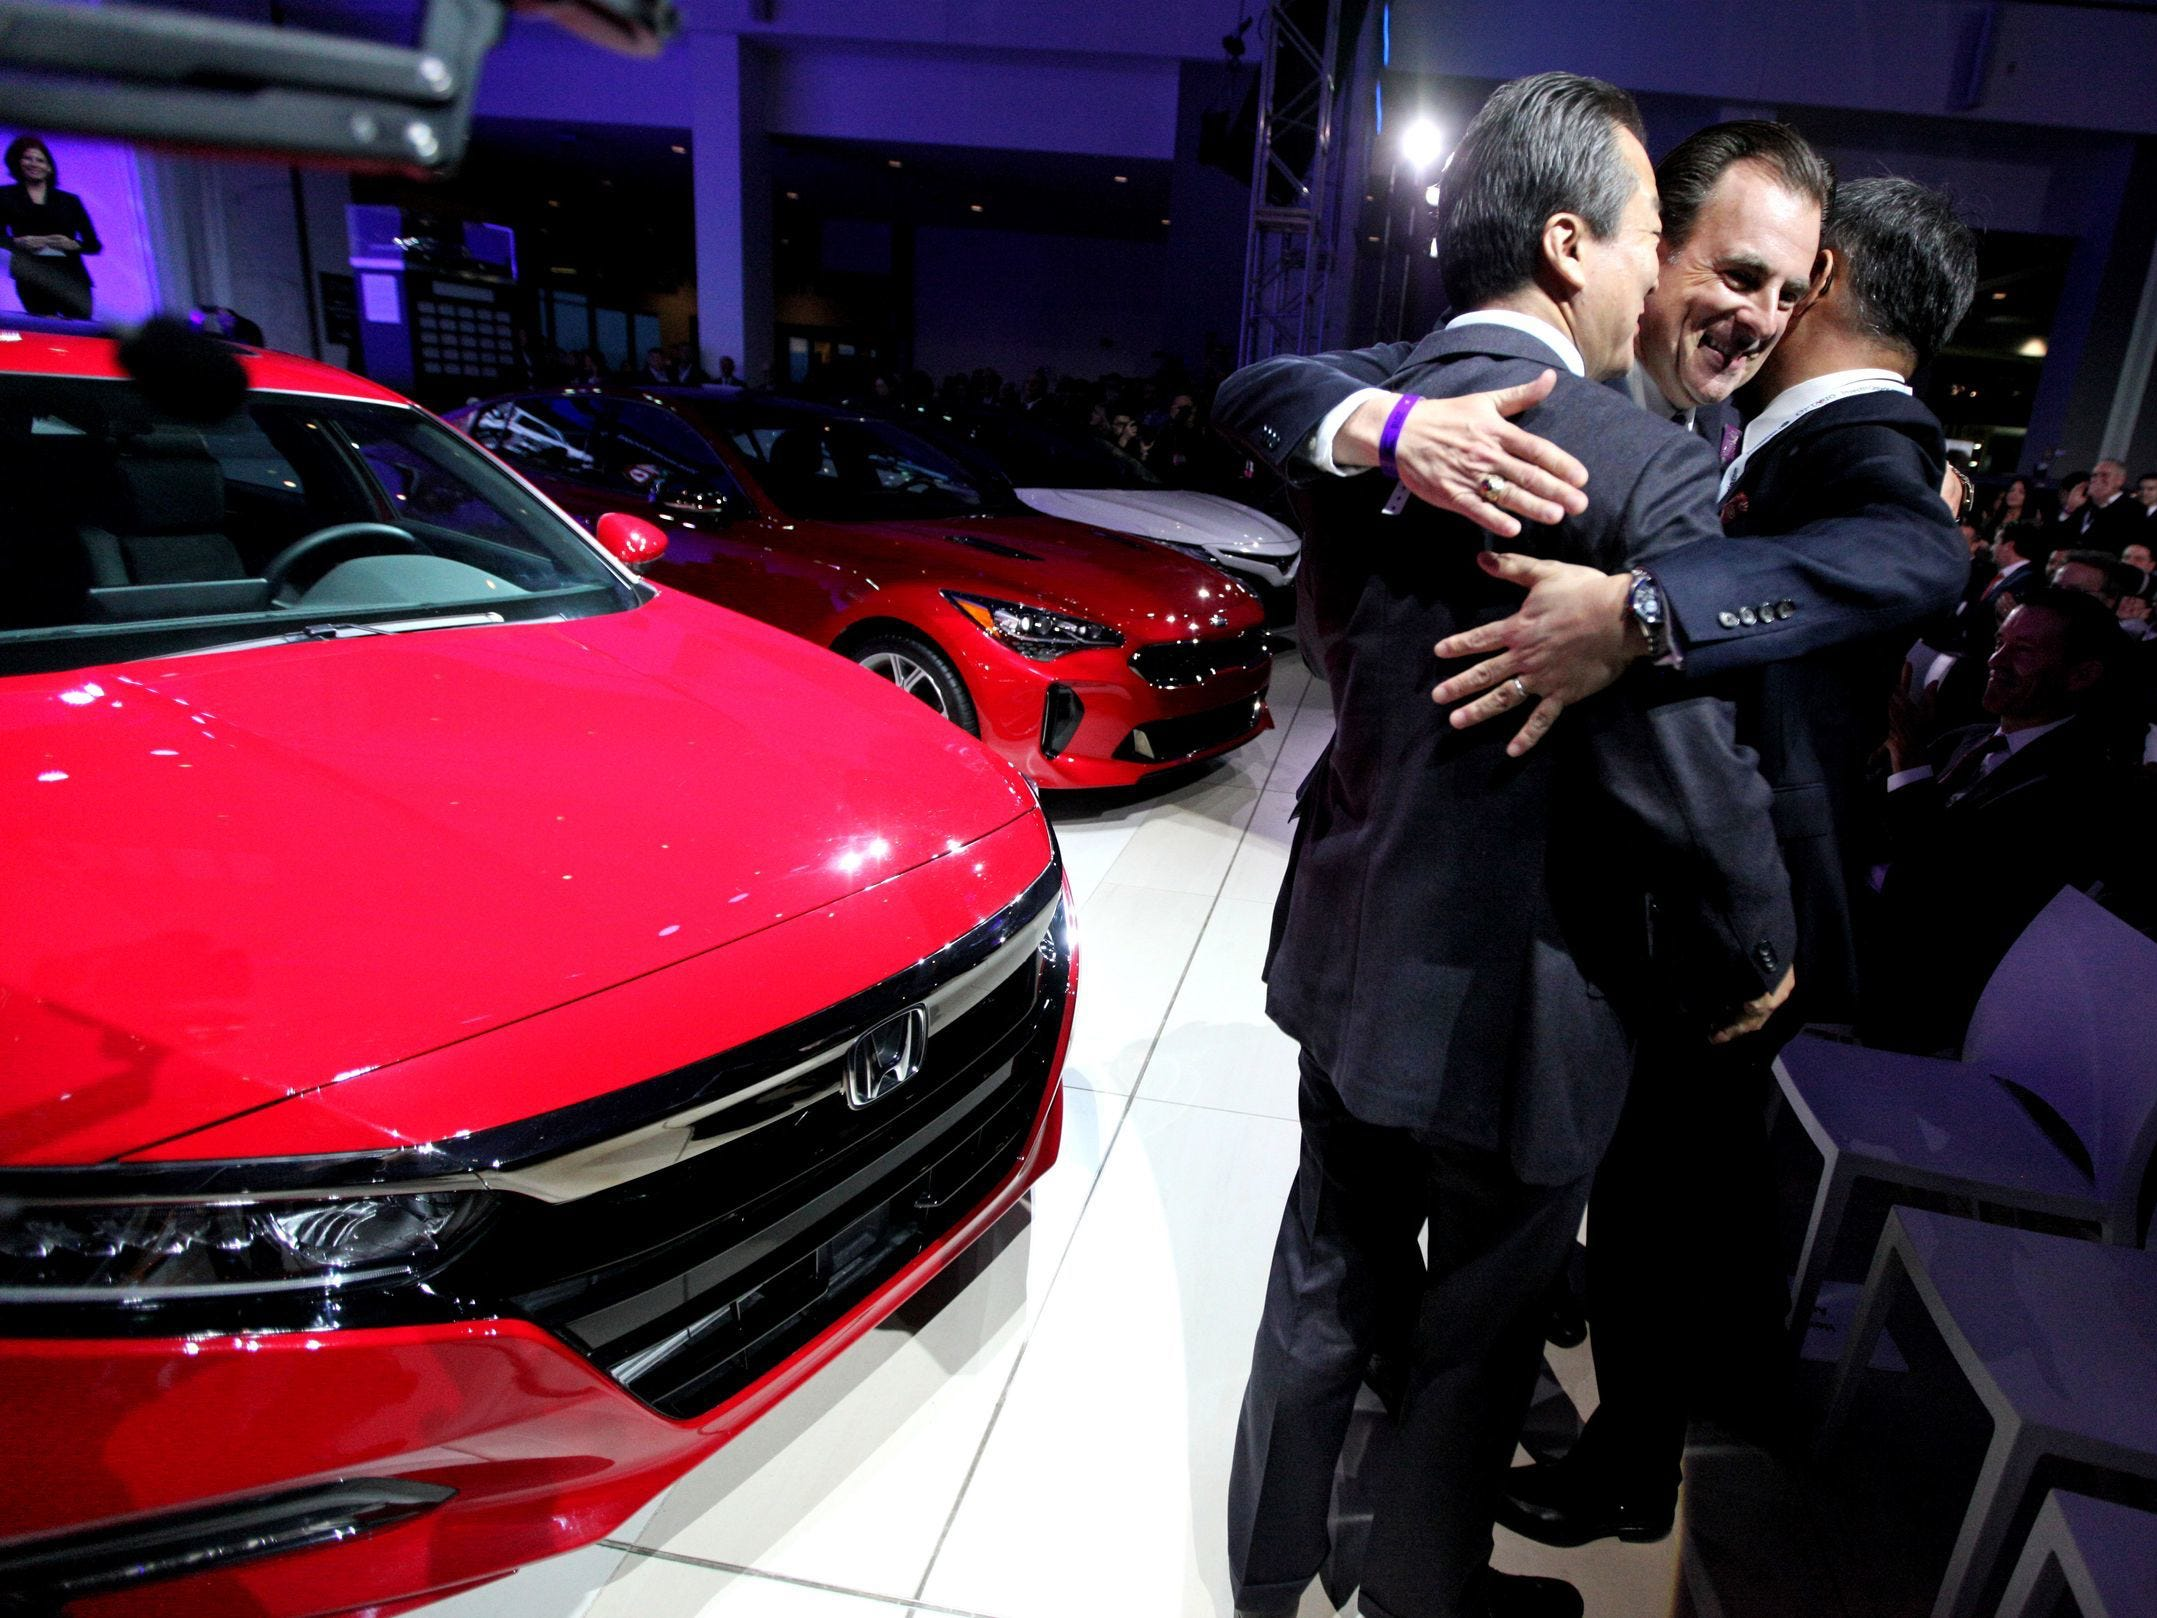 From left: Executive Vice President of Automotive Operations Masayuki Igarashi, Henio Arcangeli, Jr. is the senior vice president of the Automobile Division of American Honda Motor Co., Inc., and American Honda president & CEO Toshiaki Mikoshiba celebrate after the 2018 Honda Accord (pictured left) was named Car of the Year during the North American International Auto Show on Monday, Jan. 15, 2018 in Detroit.